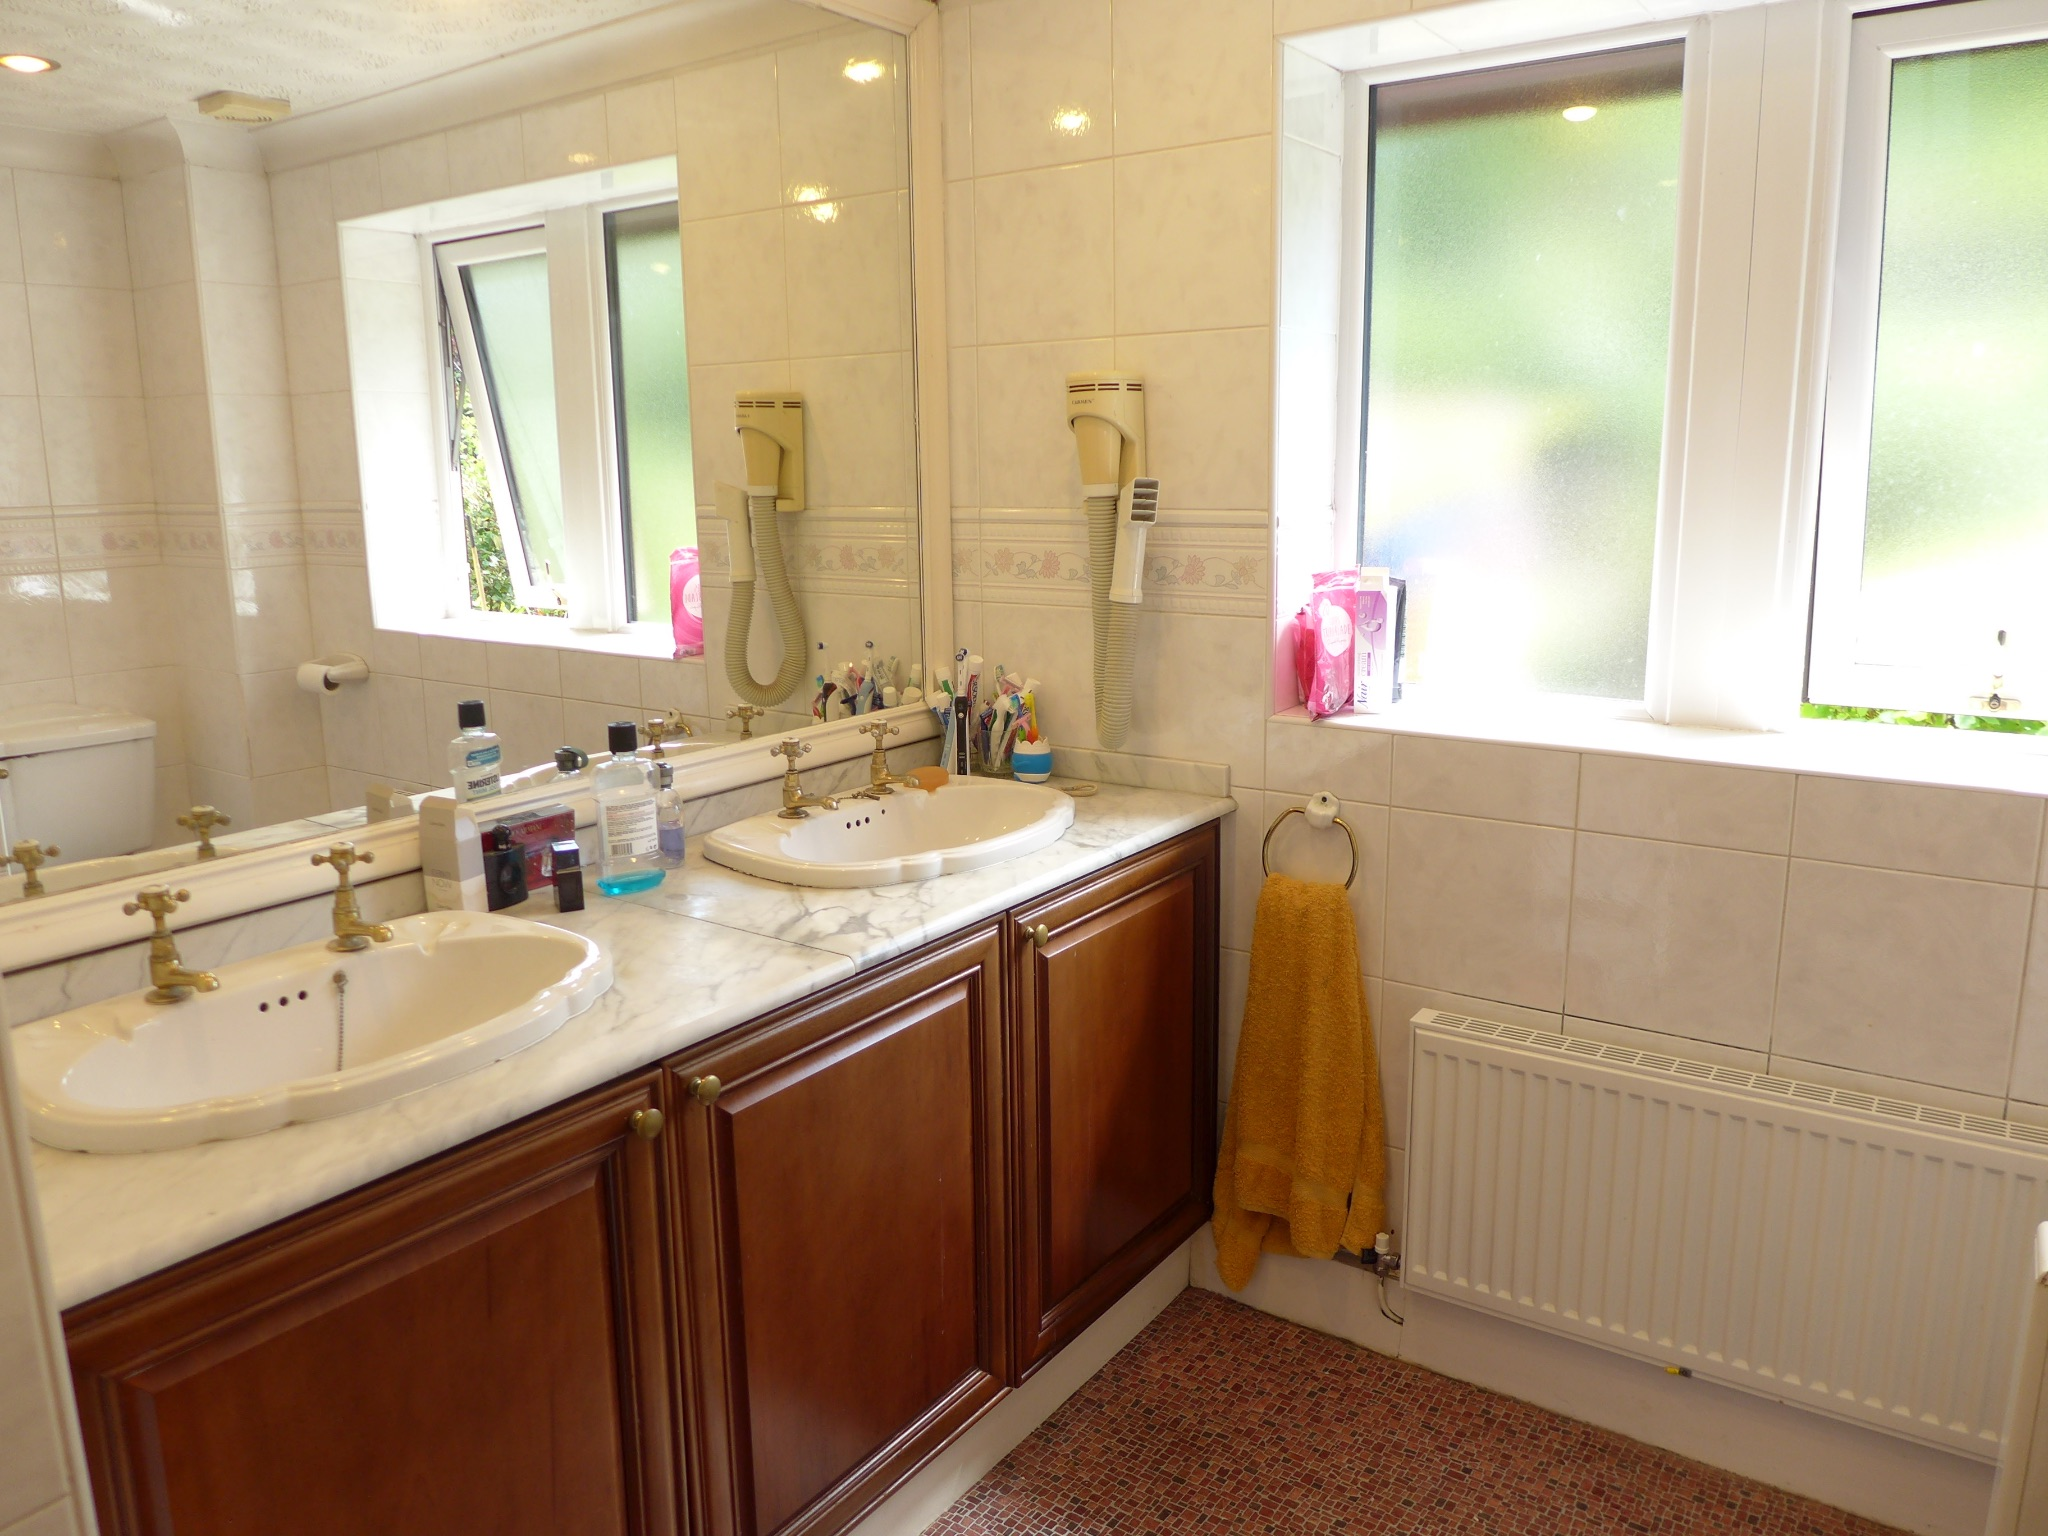 4 bedroom detached house For Sale in Todmorden - Photograph 16.